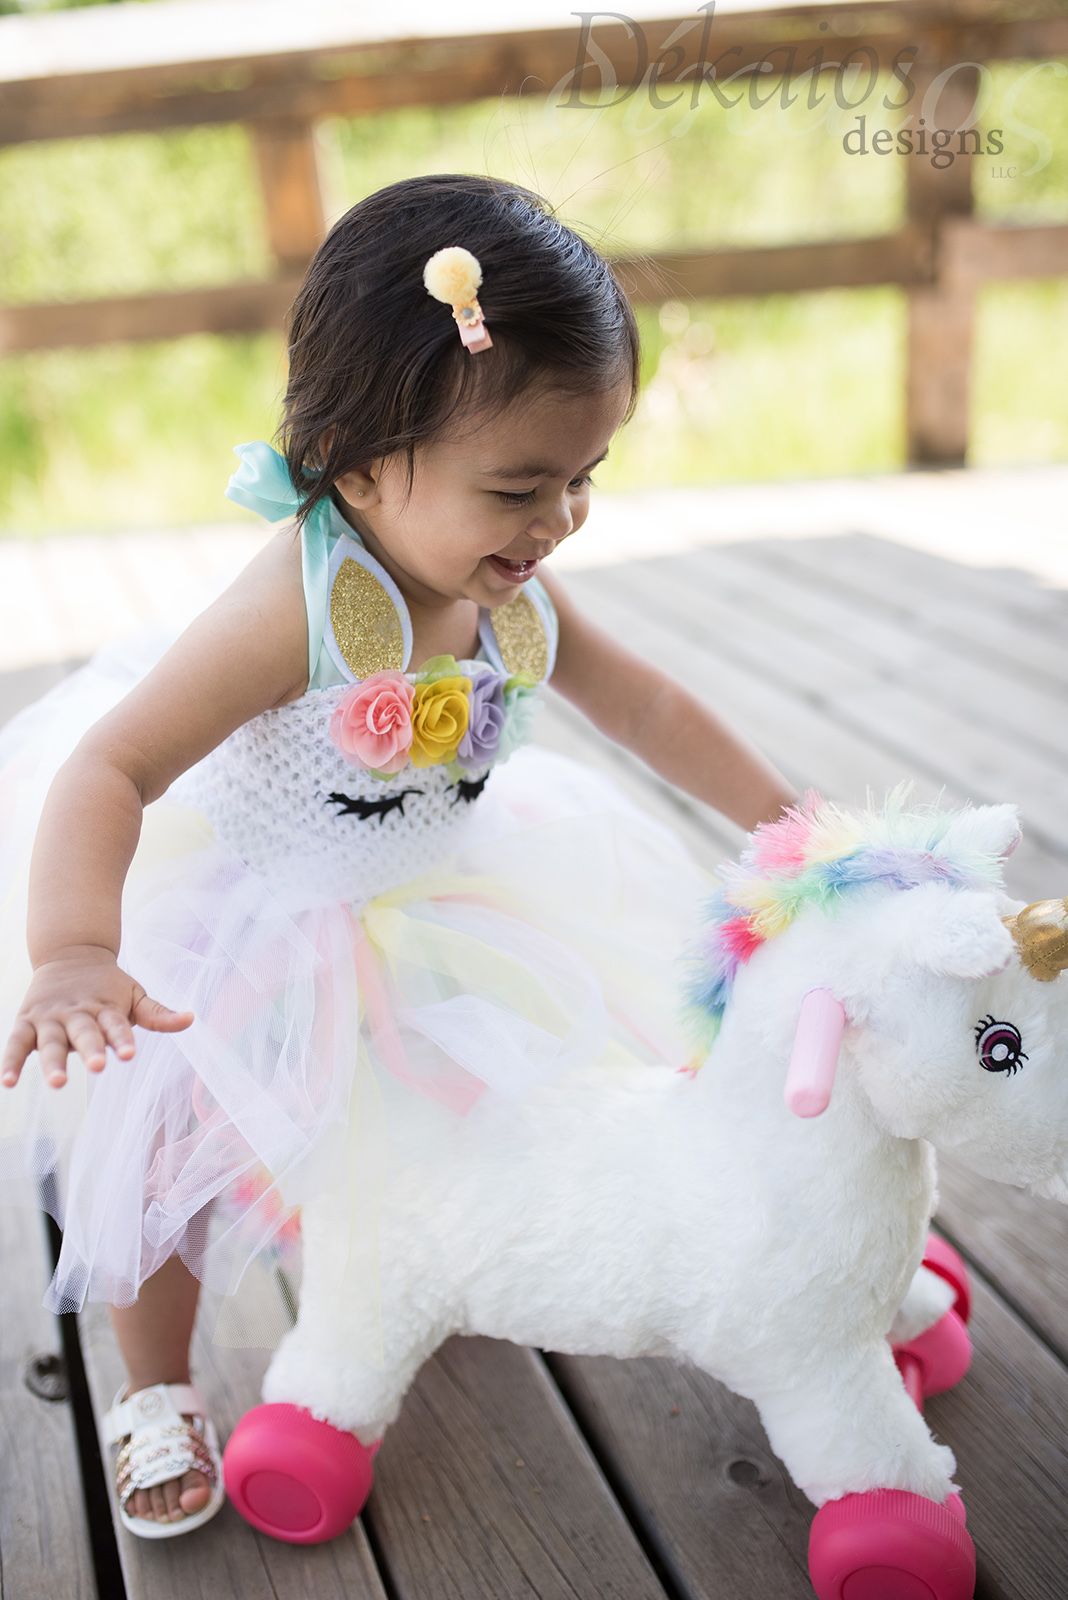 She had a unicorn themed birthday celebration. We had to get a few shots in her cute birthday clothing.